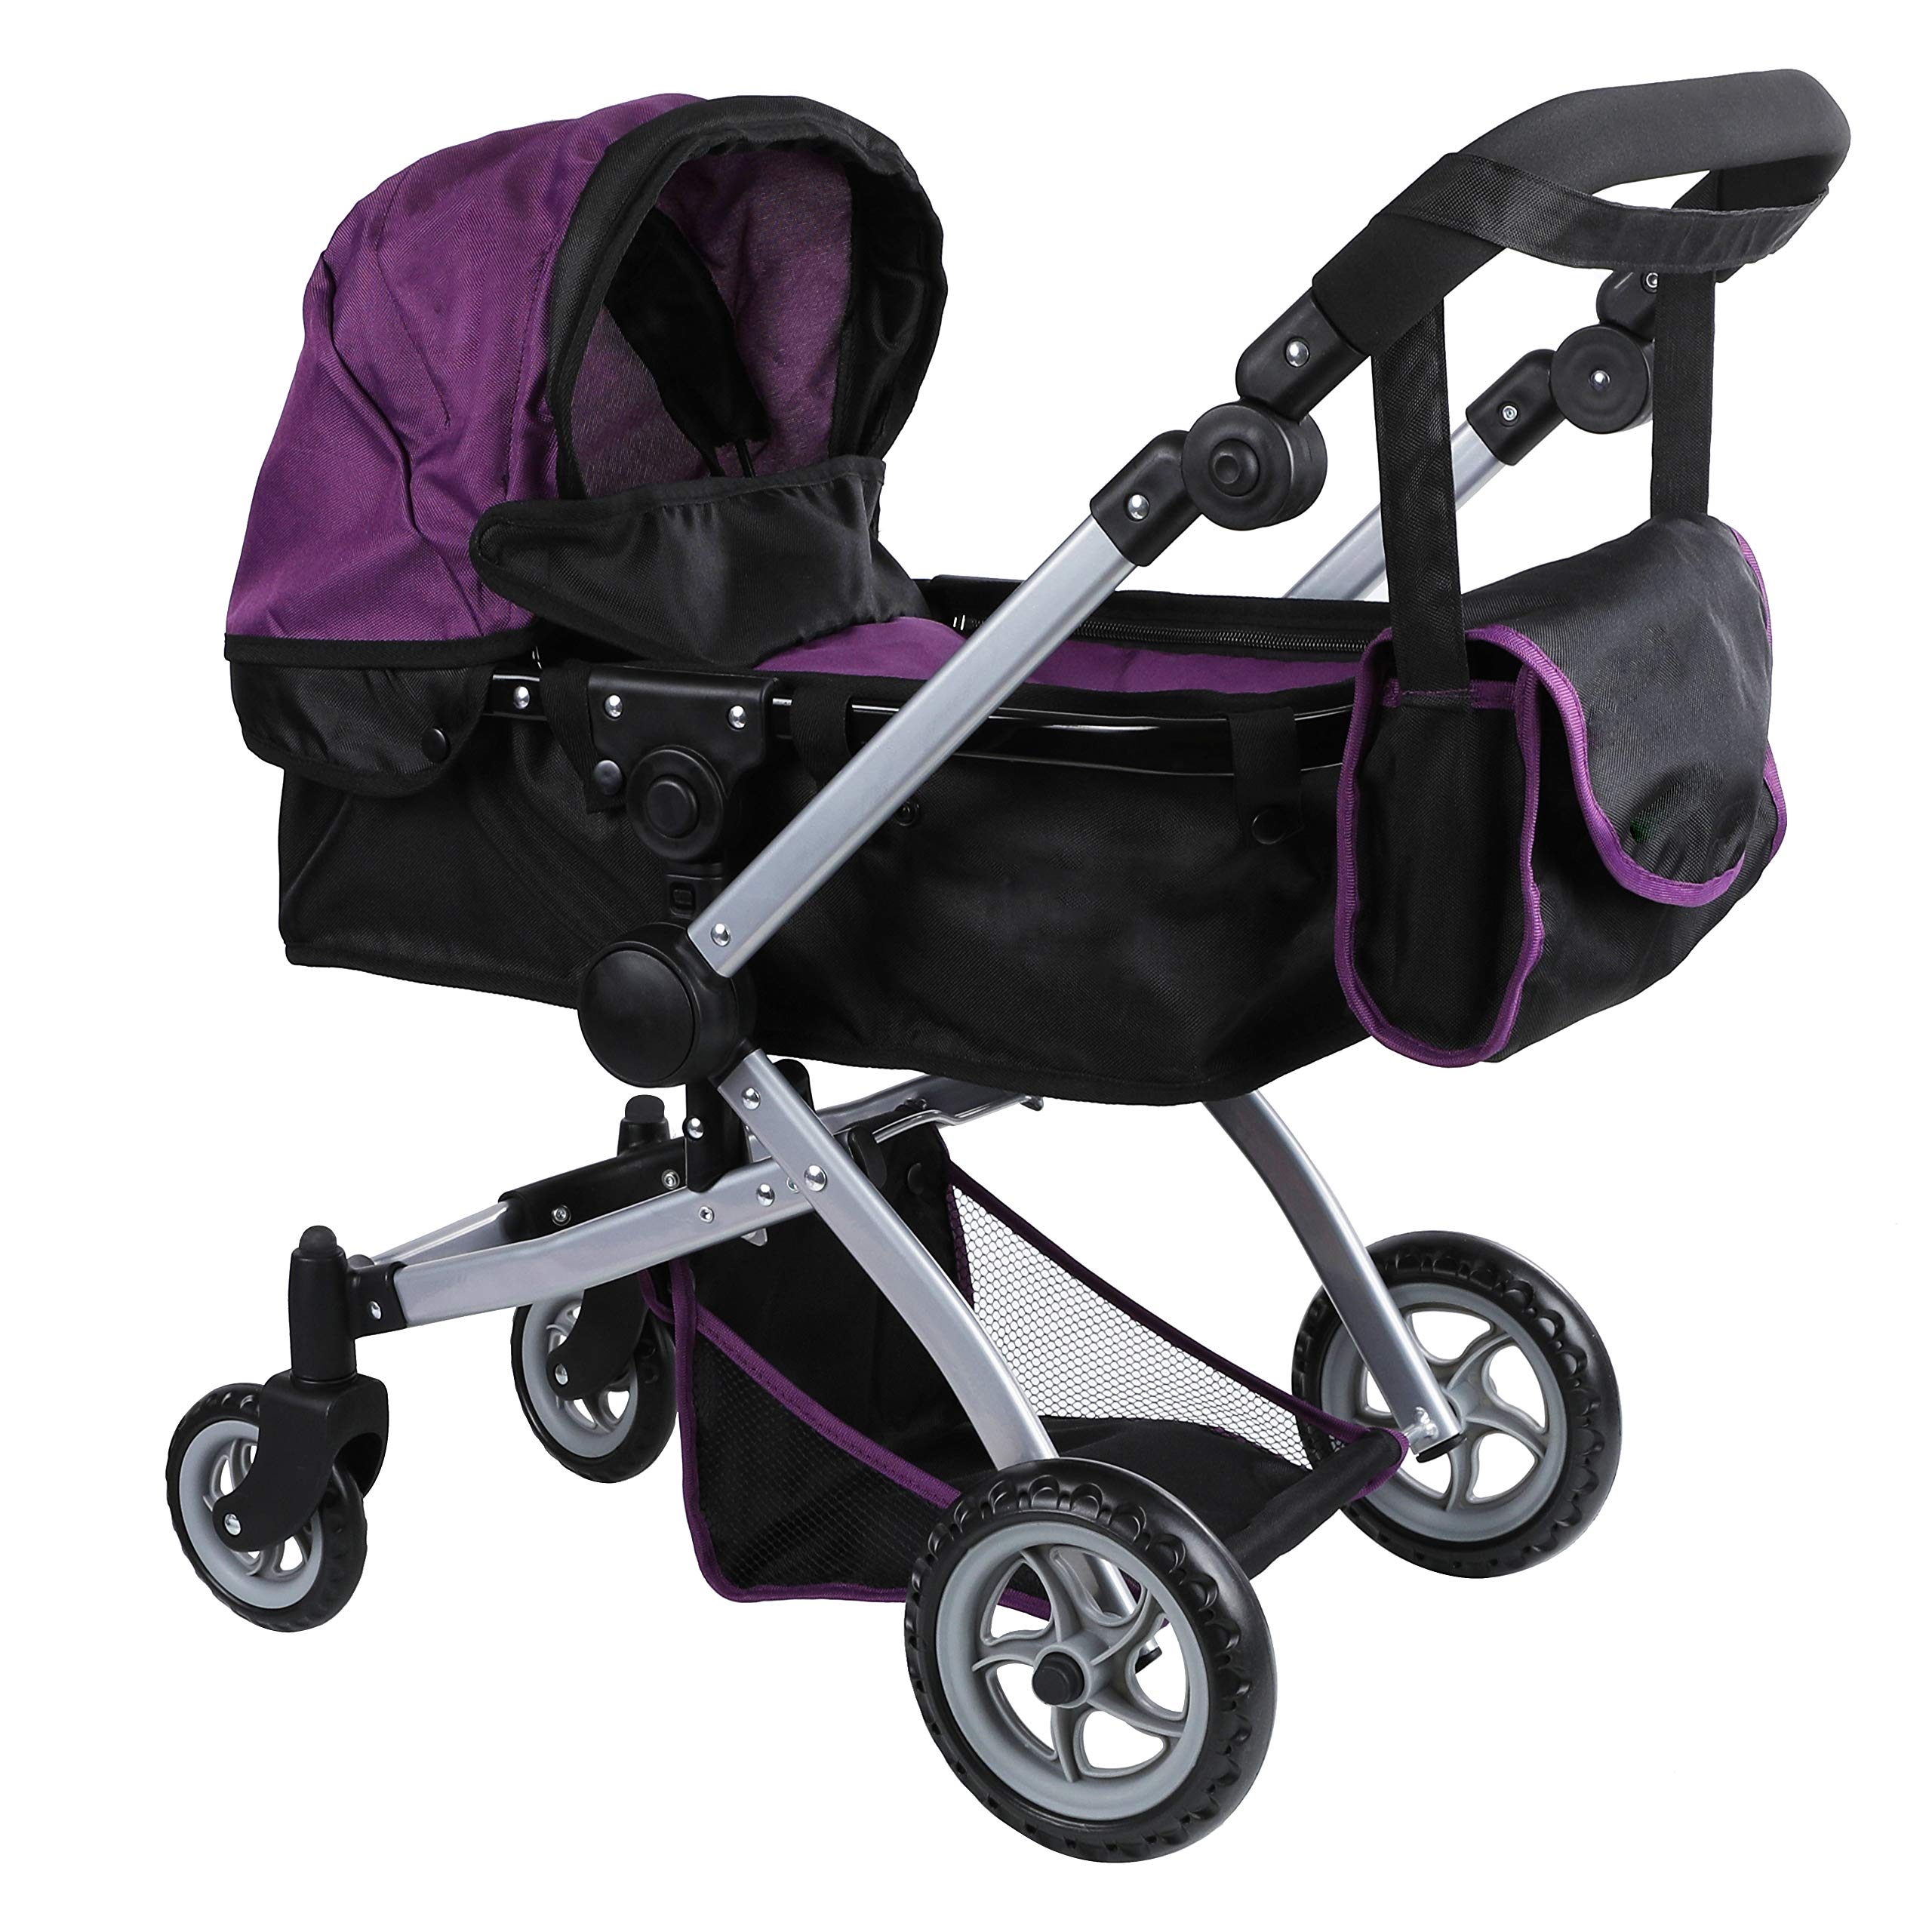 Babyboo Deluxe Doll Pram Color PURPLE & BLACK with Swiveling Wheels & Adjustable Handle and Free Carriage Bag - 9651B PRP by Mommy & Me Doll Collection